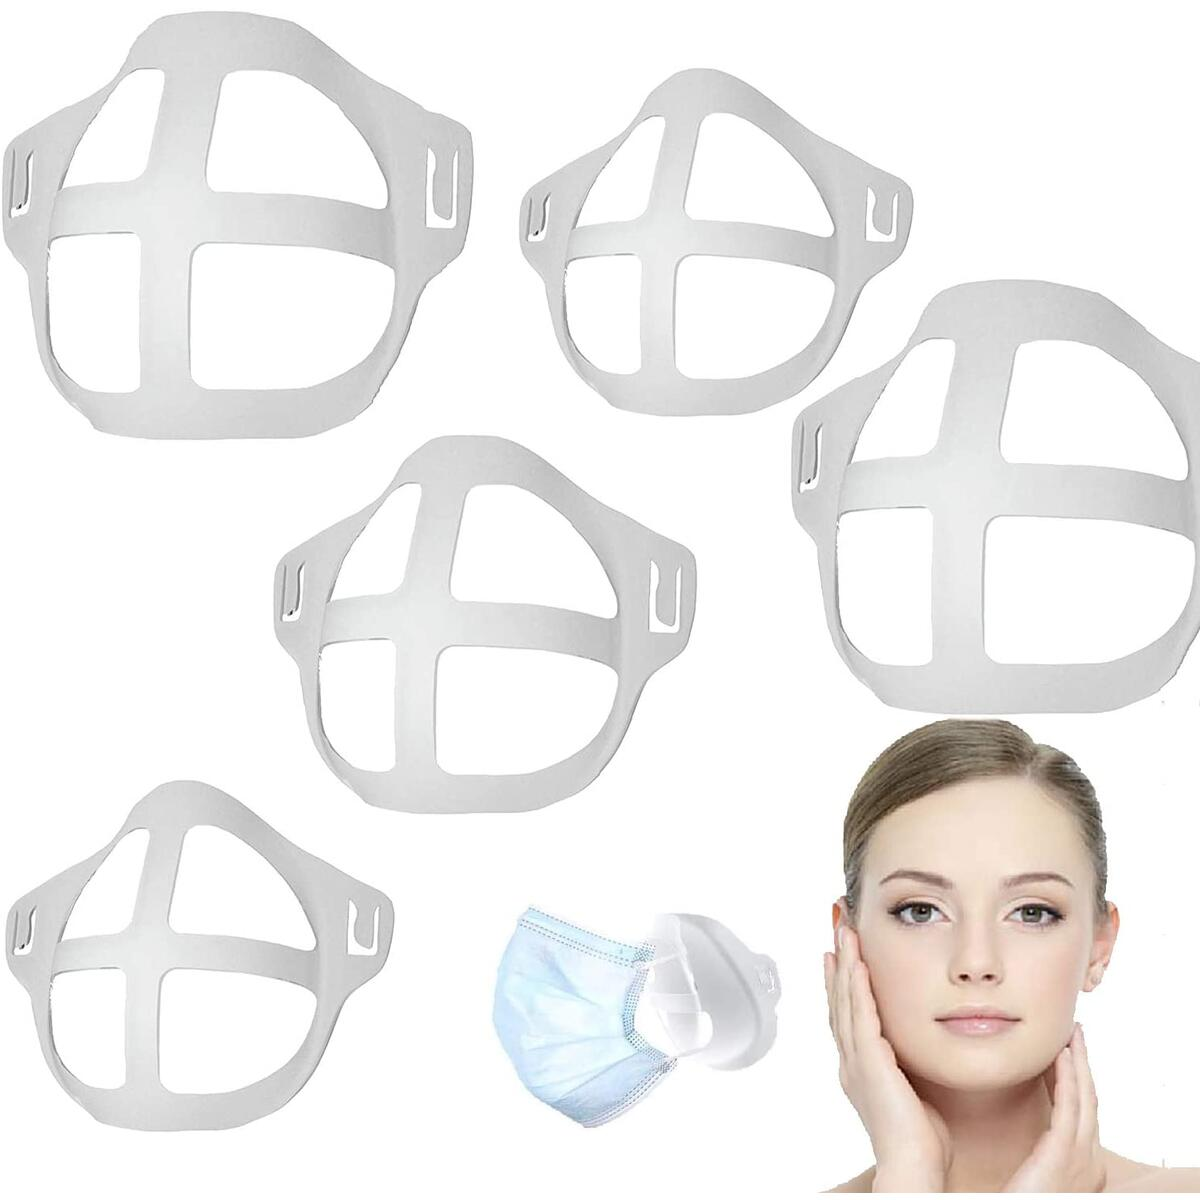 5Pcs Of Face Mask Accessories | Plastic Bracket | More Space For Comfortable Breathing Protect Lipstick | Washable & Reusable